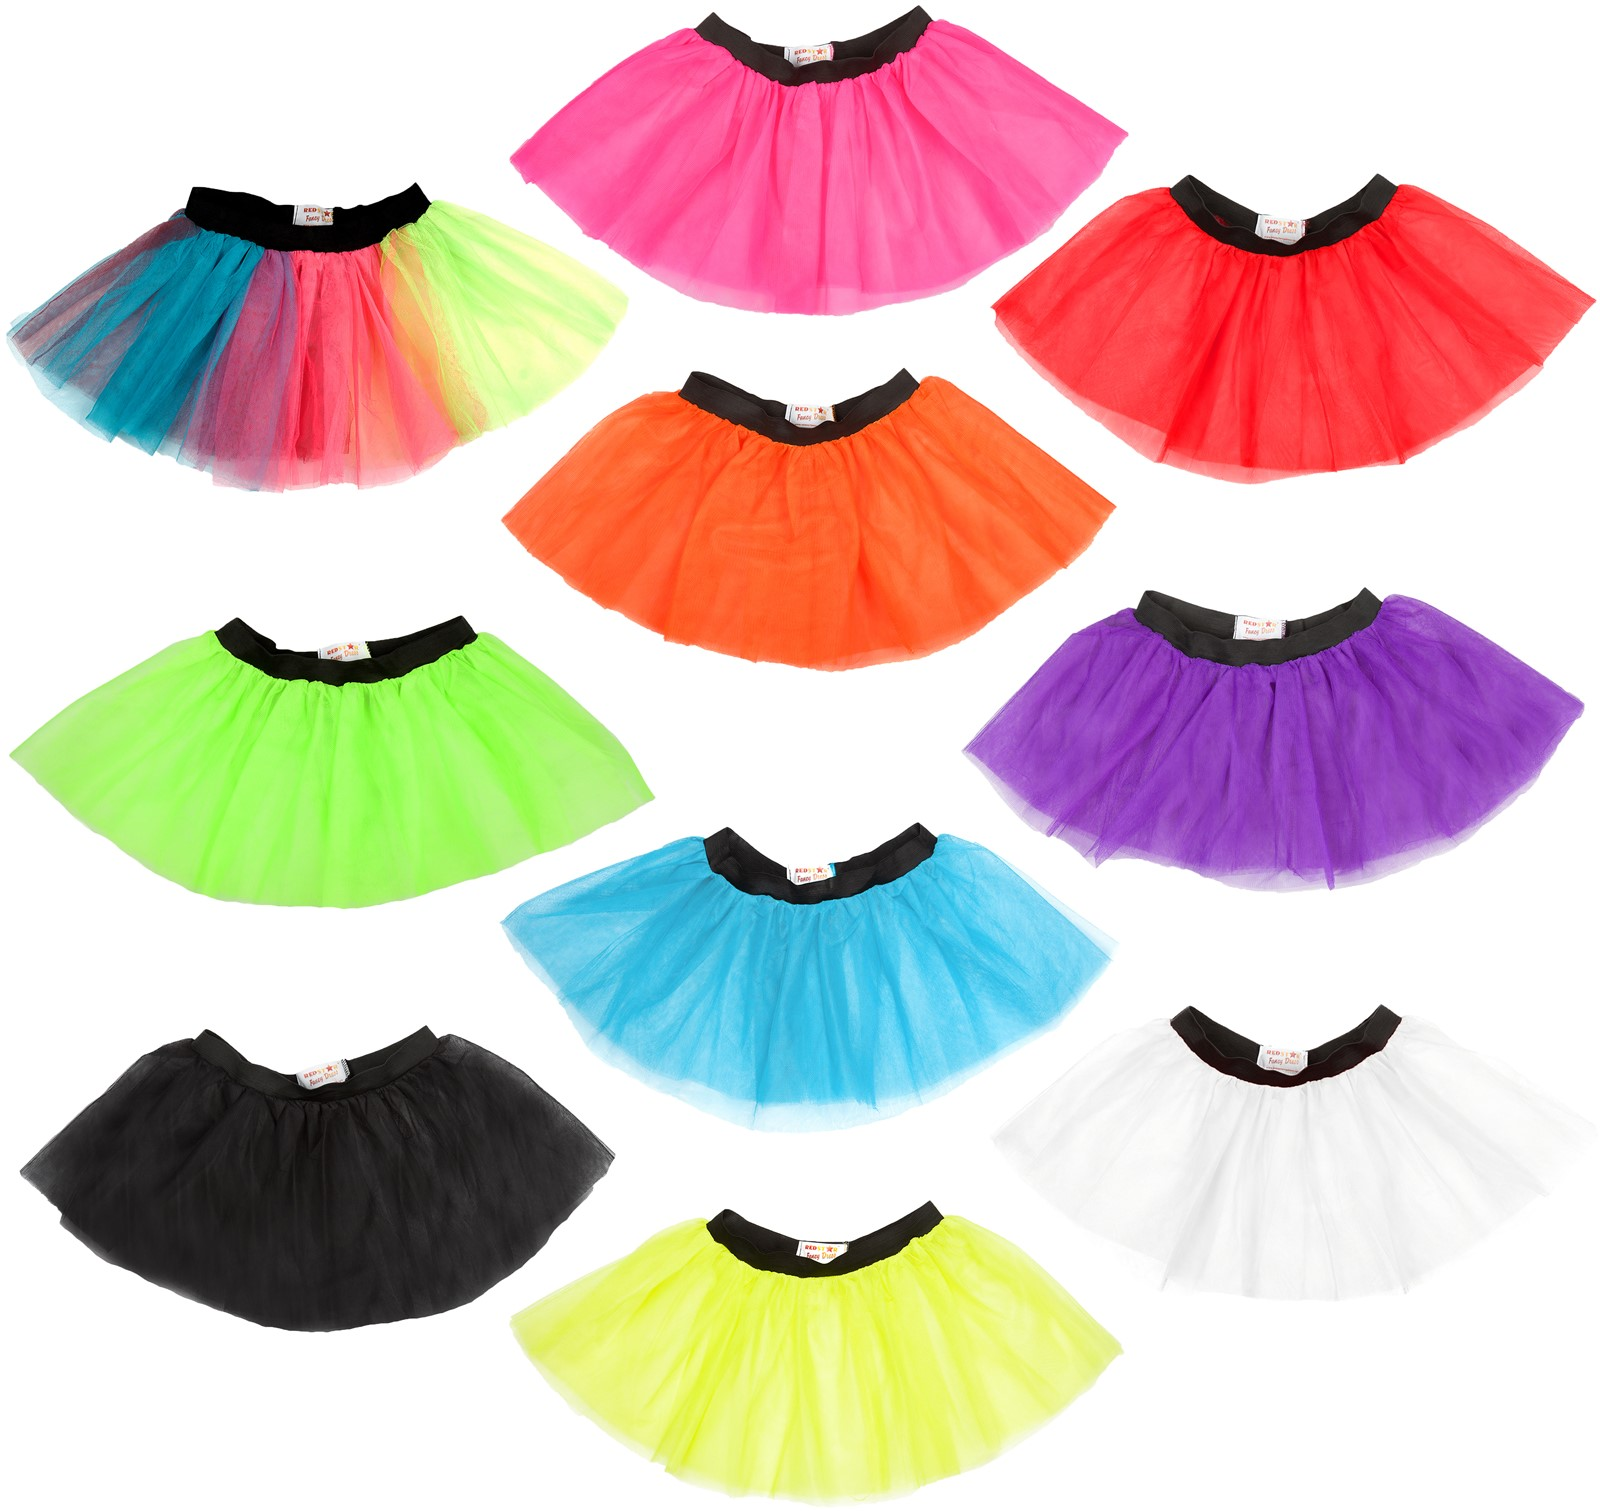 HIGH QUALITY NEON UV TUTU SKIRTS 1980/'s FANCY DRESS HEN PARTY COSTUME ADULT KID